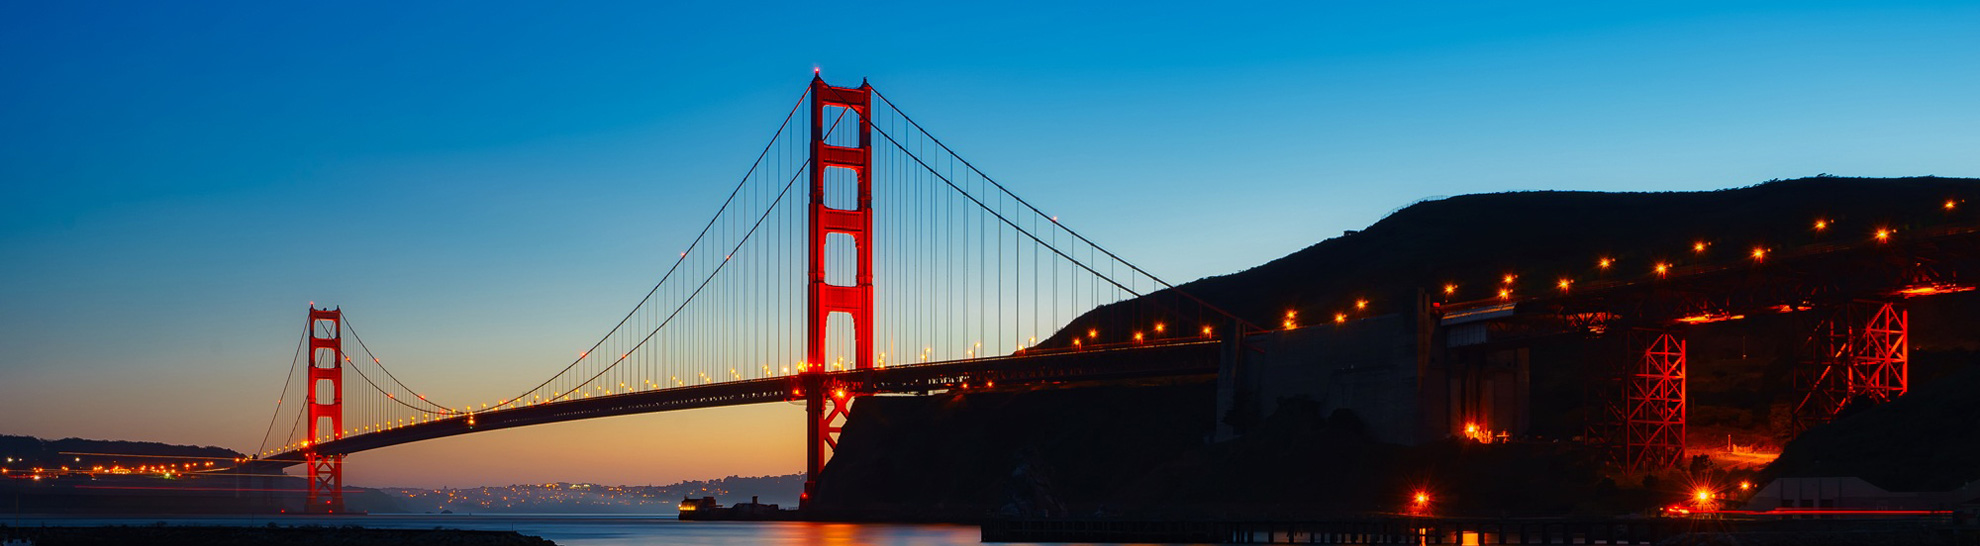 Community Initiatives is a fiscal agency located in San Francisco